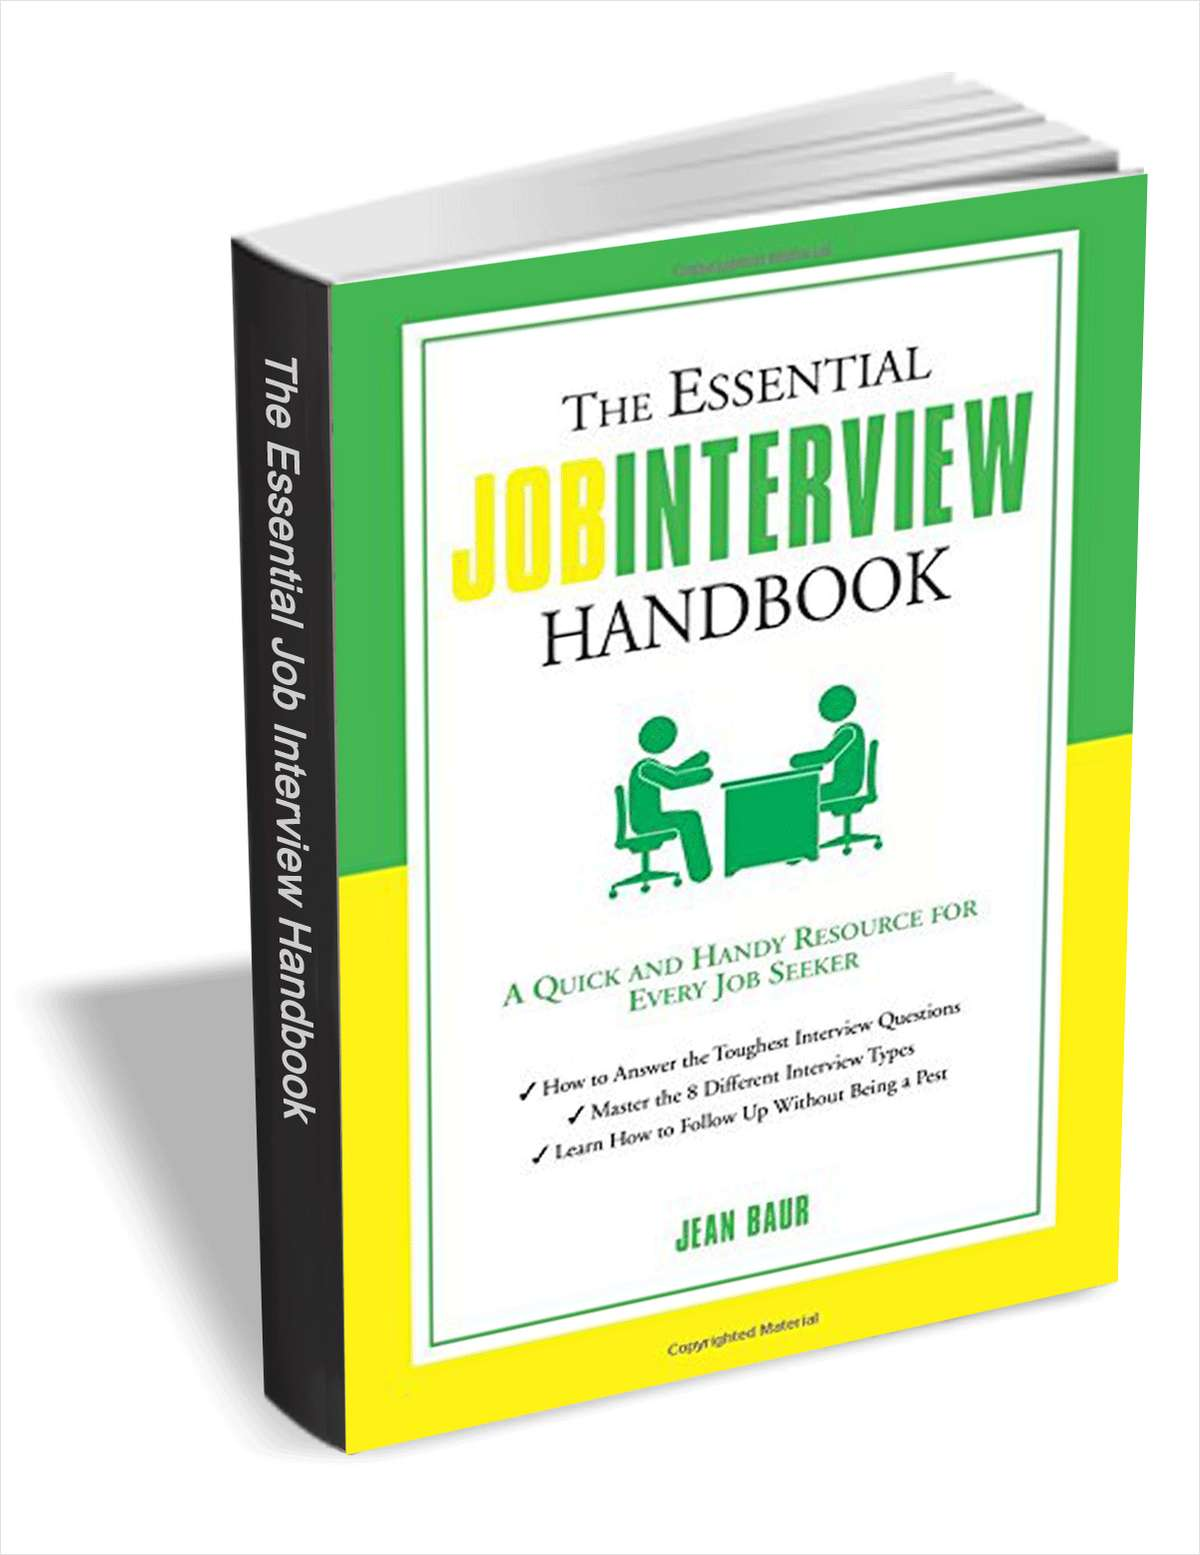 The Essential Job Interview Handbook ($8.50 Value) FREE For a Limited Time